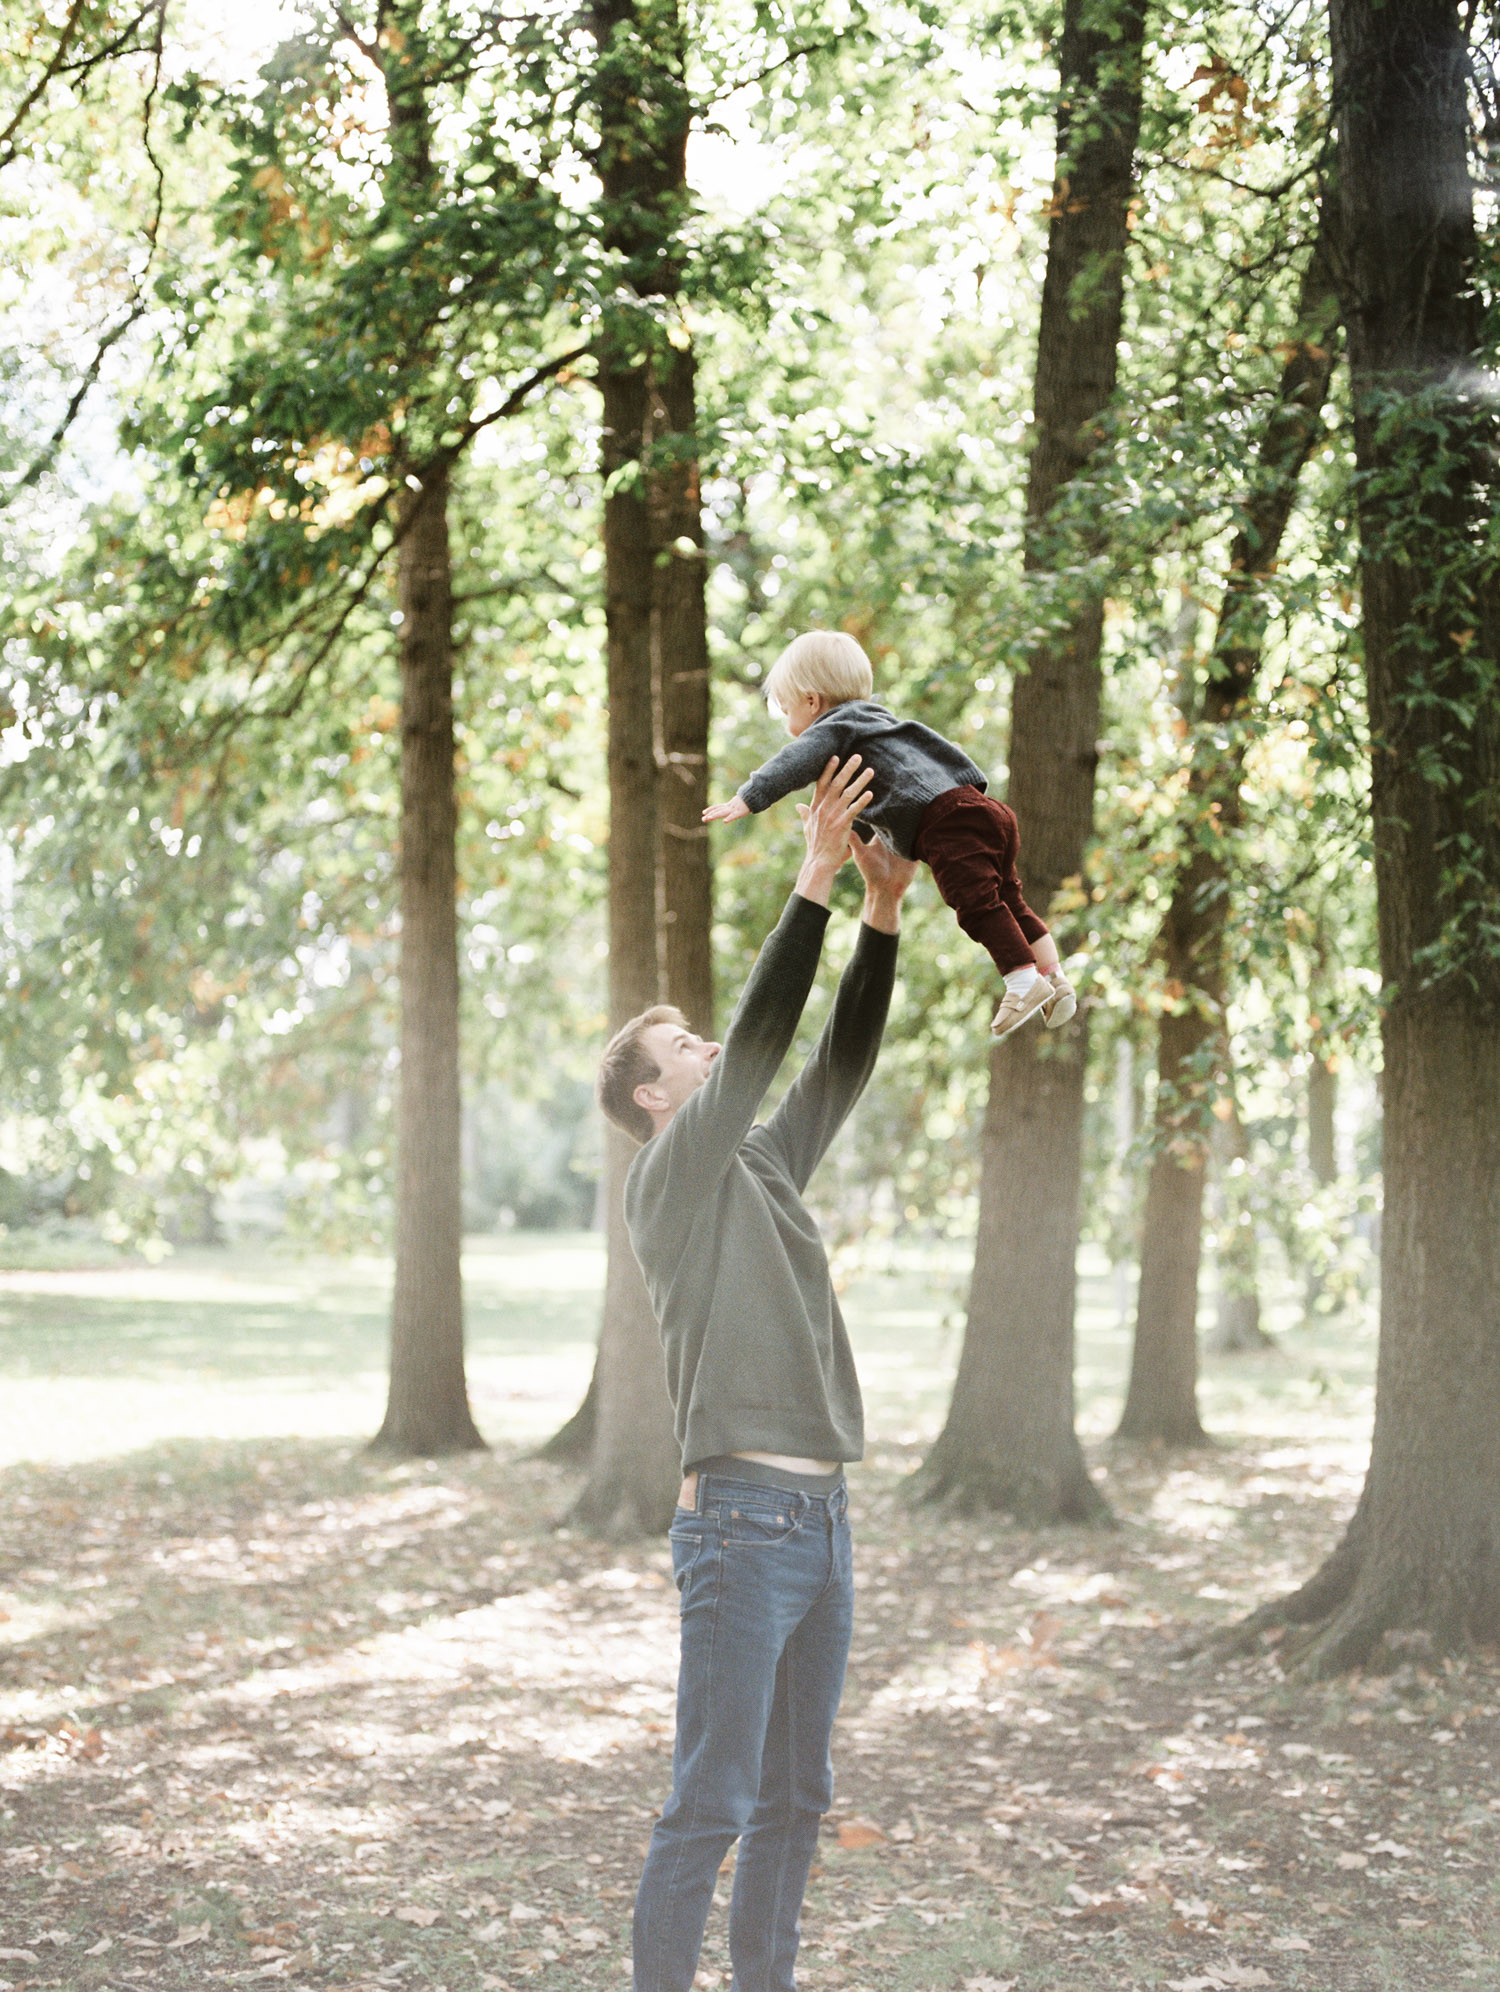 A father tosses his toddler son in the air at a park in Royal Oak as the fall leaves begin to turn